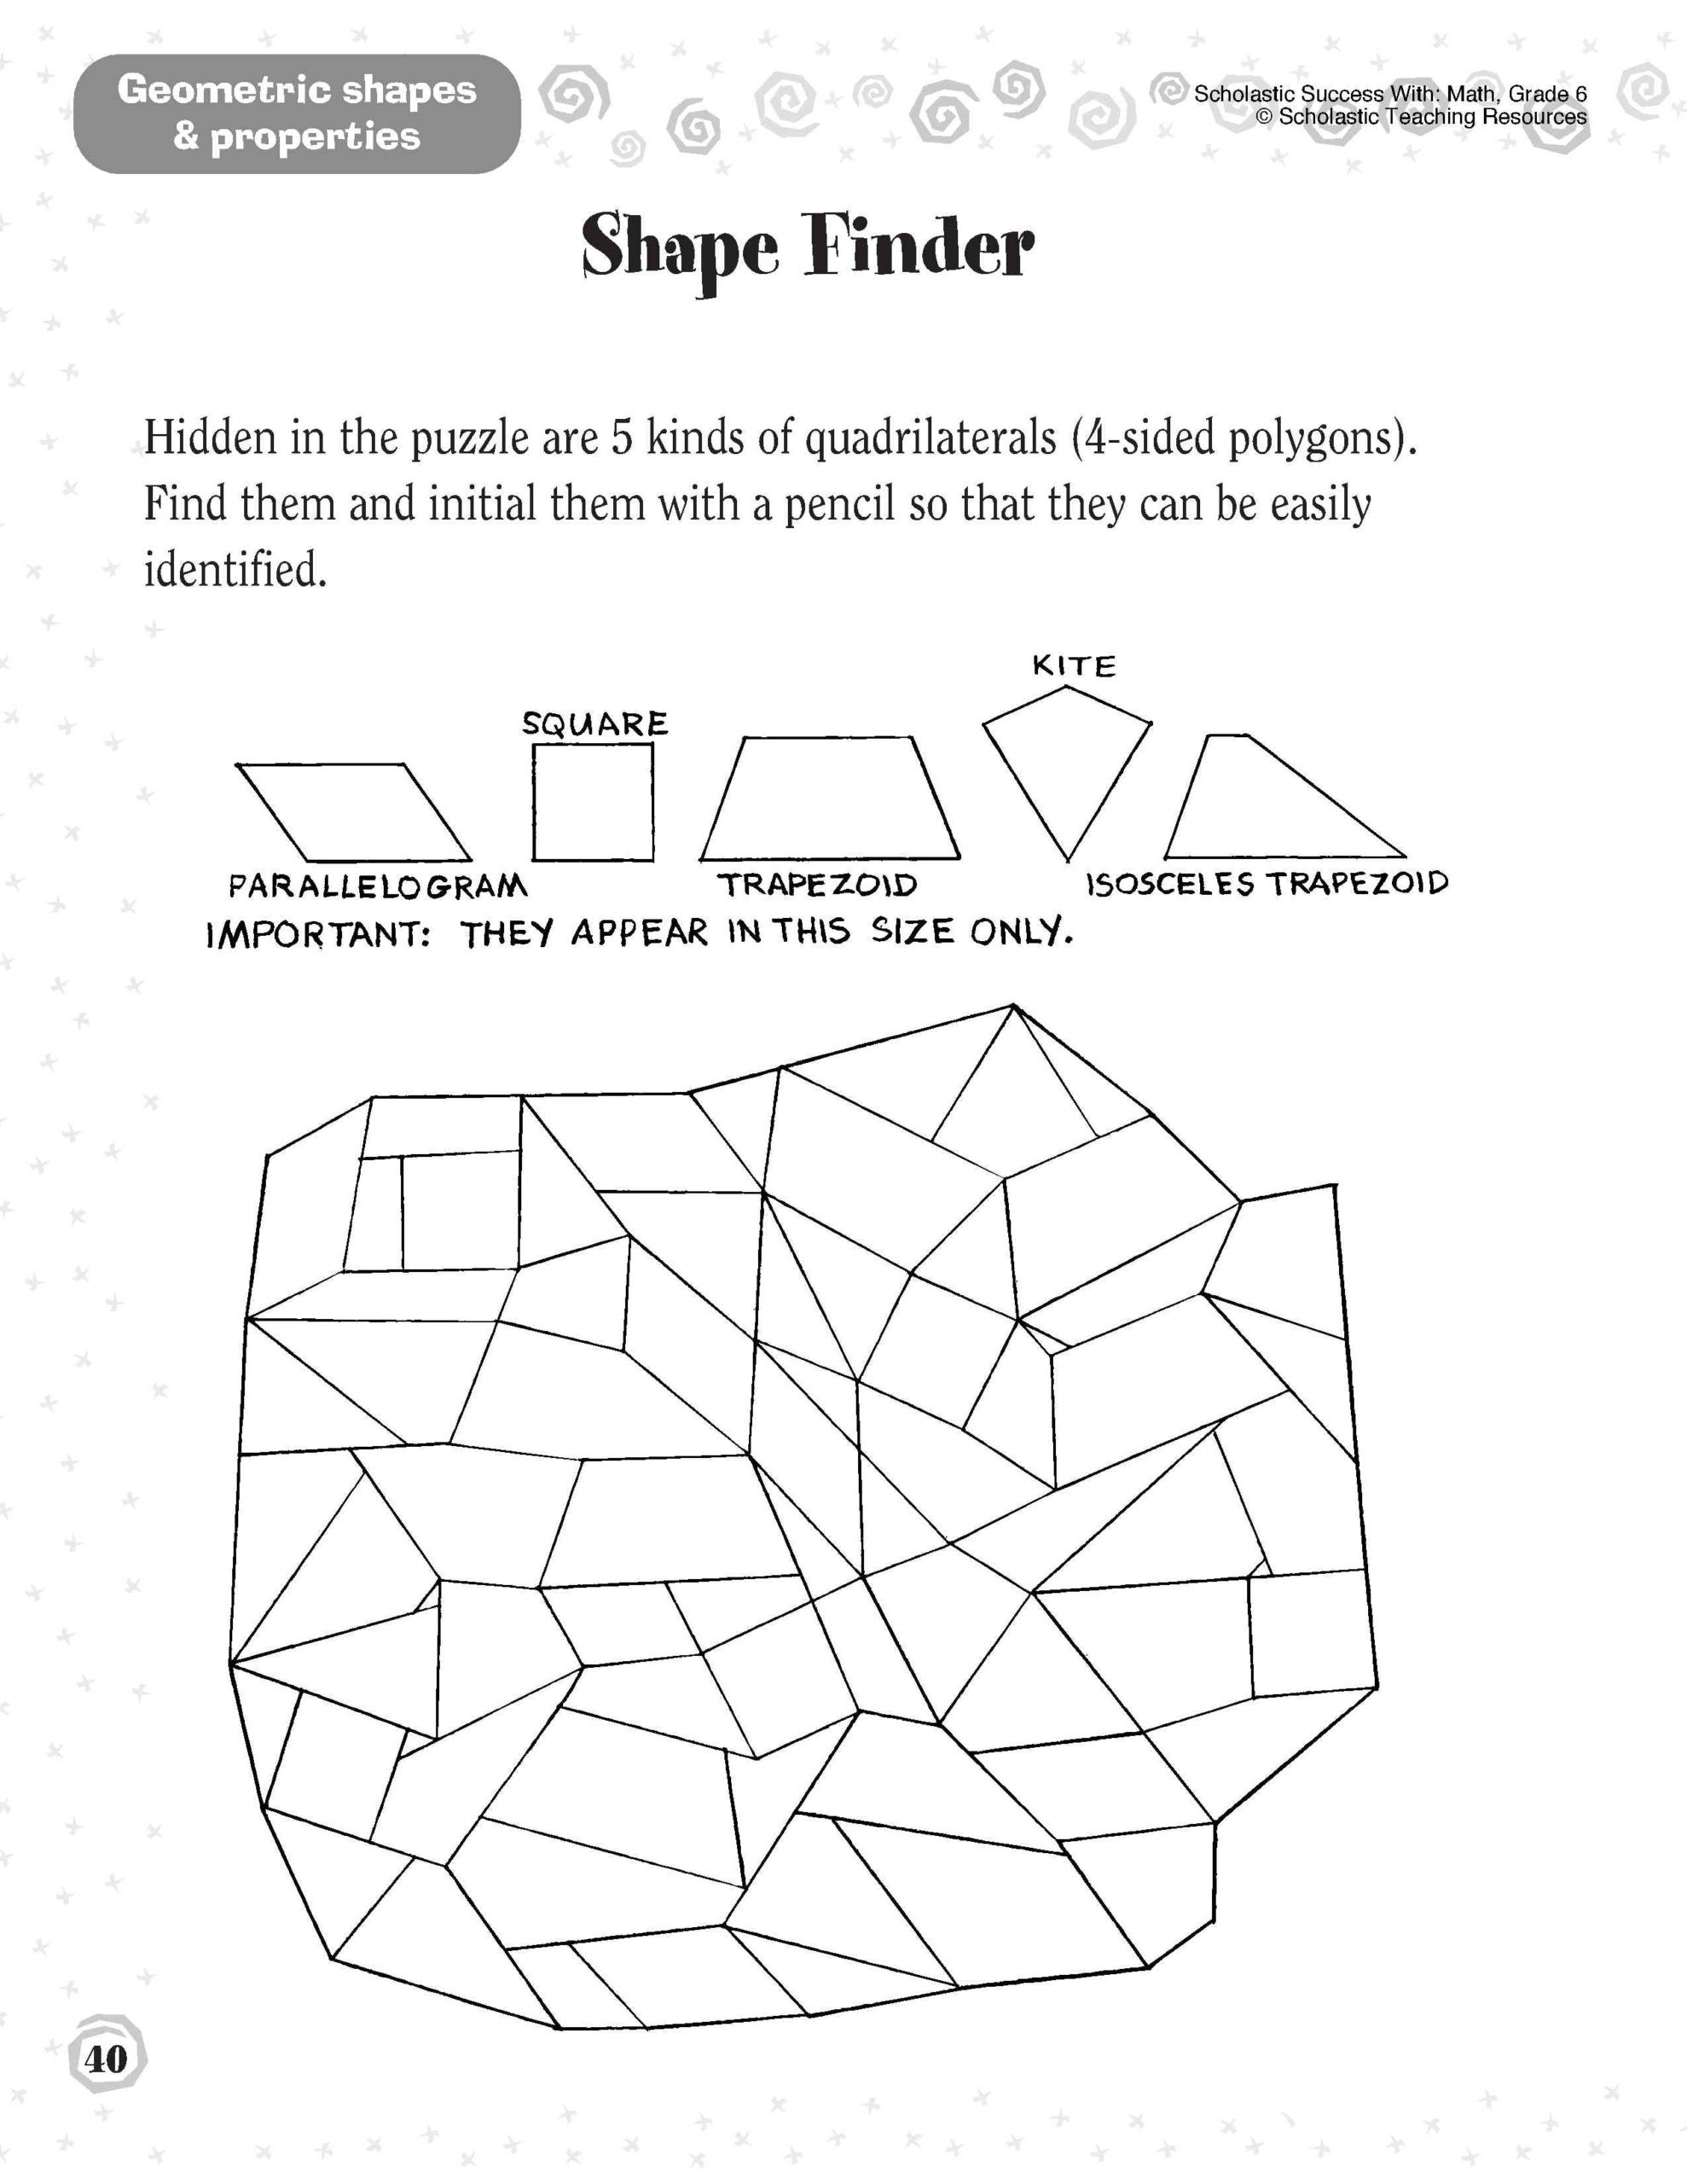 Number Patterns Worksheets Grade 6 1st Grade Shapes Worksheet Printable Worksheets and